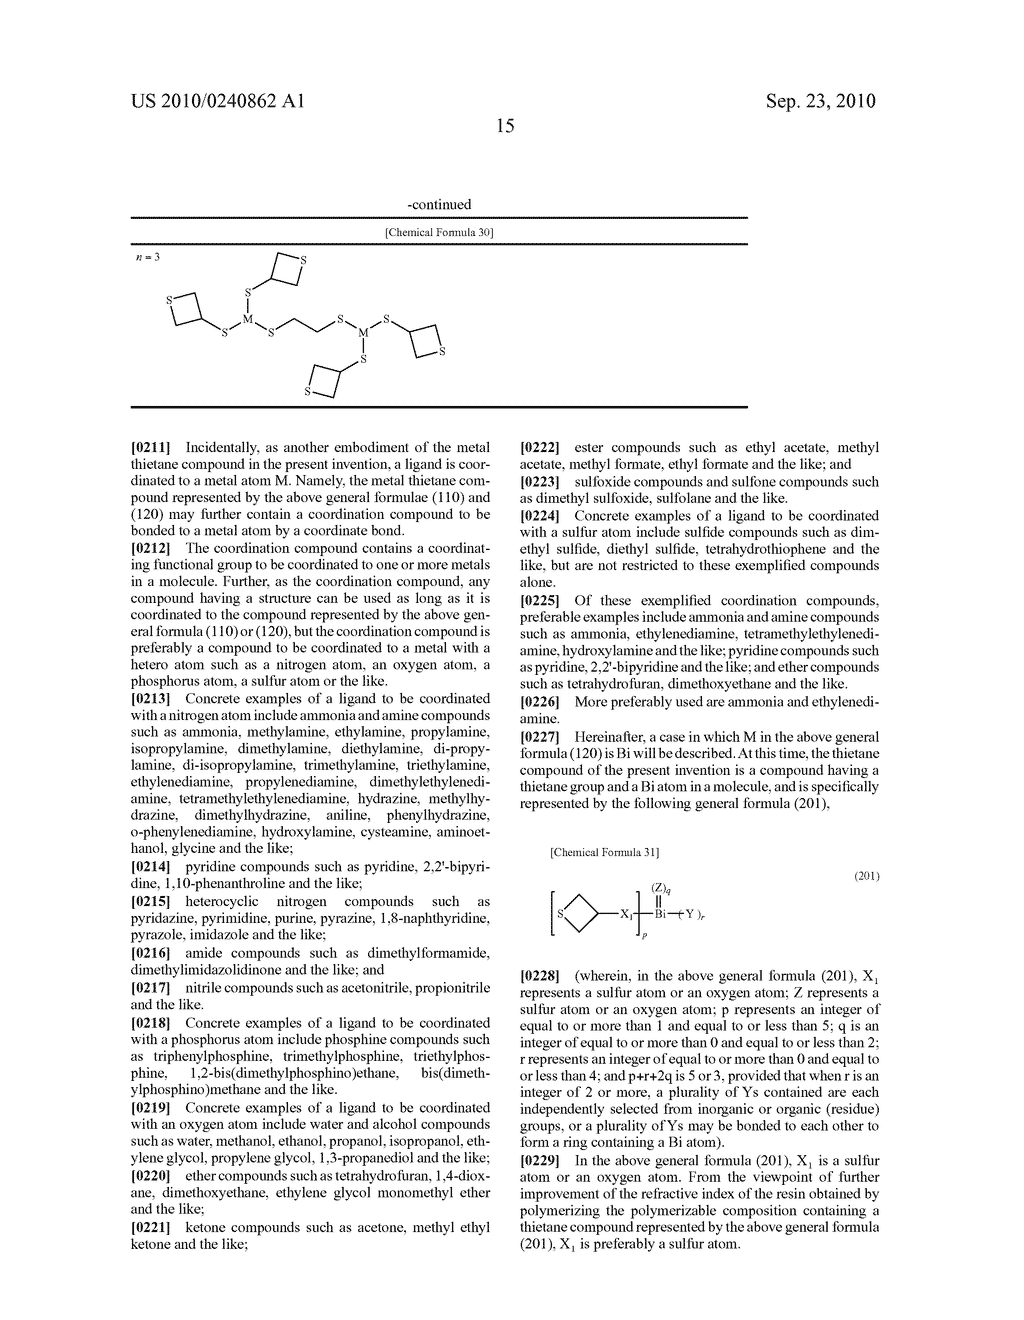 METAL THIETANE COMPOUND, POLYMERIZABLE COMPOSITION CONTAINING THE COMPOUND, RESIN AND USE OF THE RESIN - diagram, schematic, and image 16